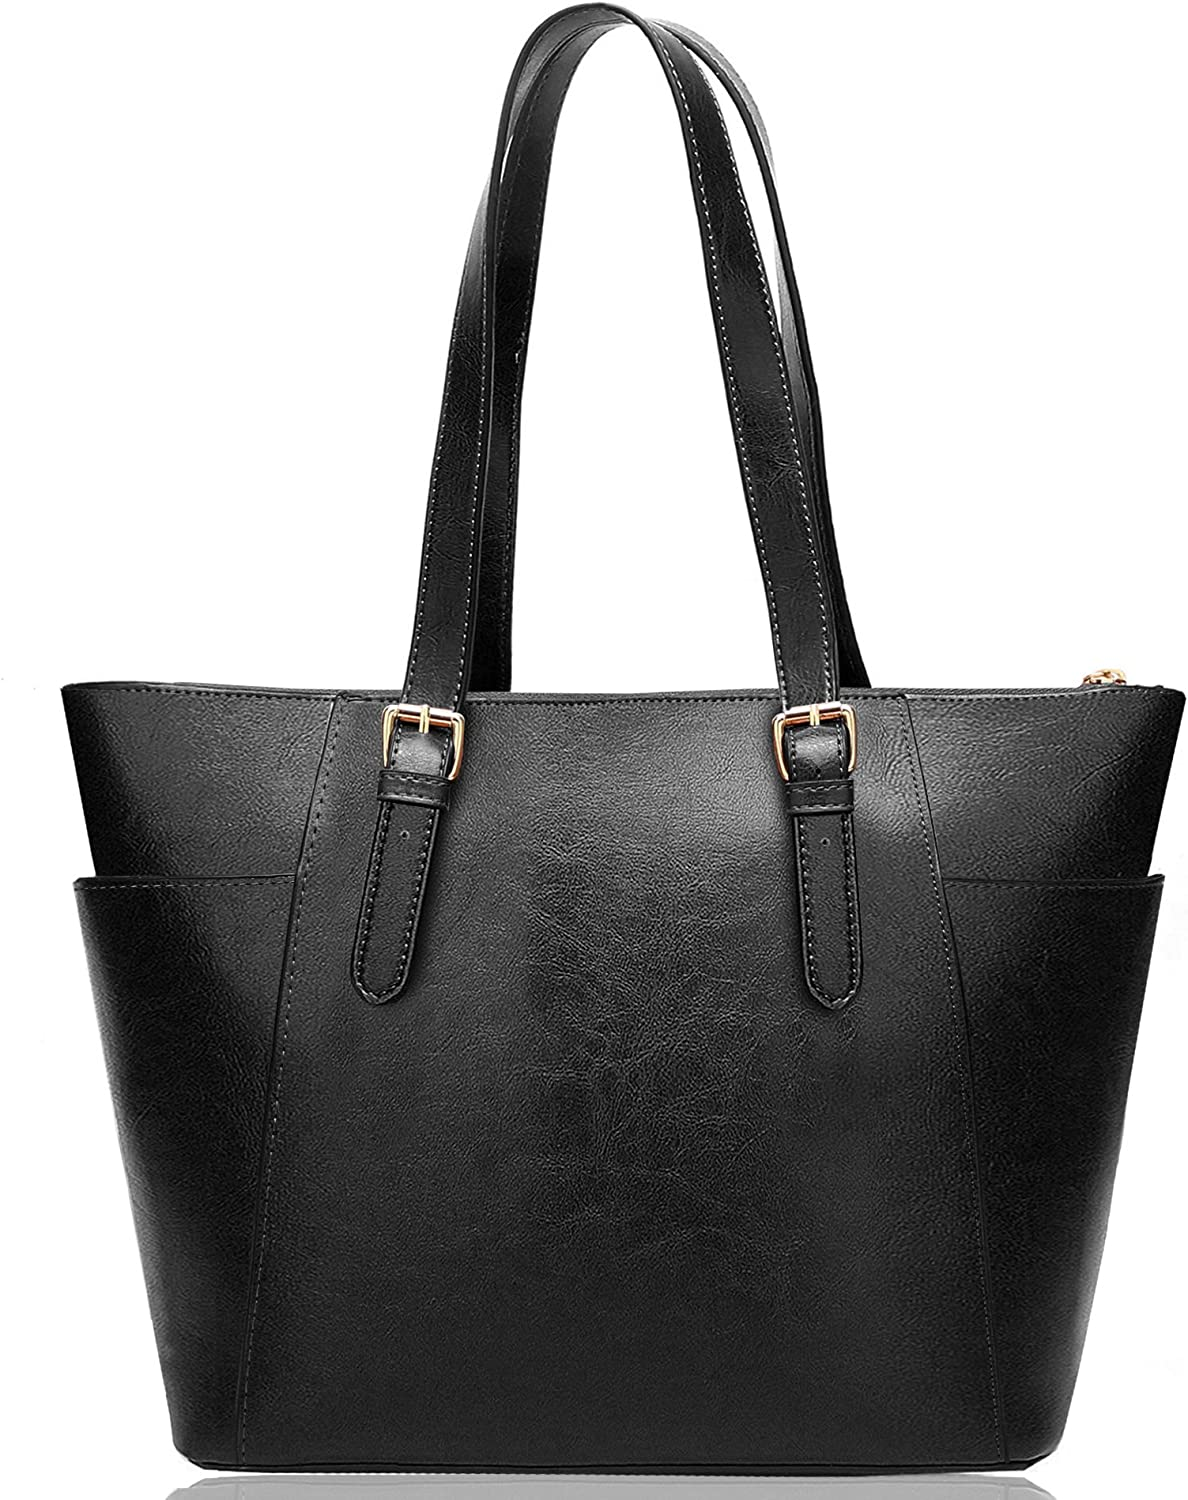 COCIFER Womens Purses and Handbags TopZip Tote Bags